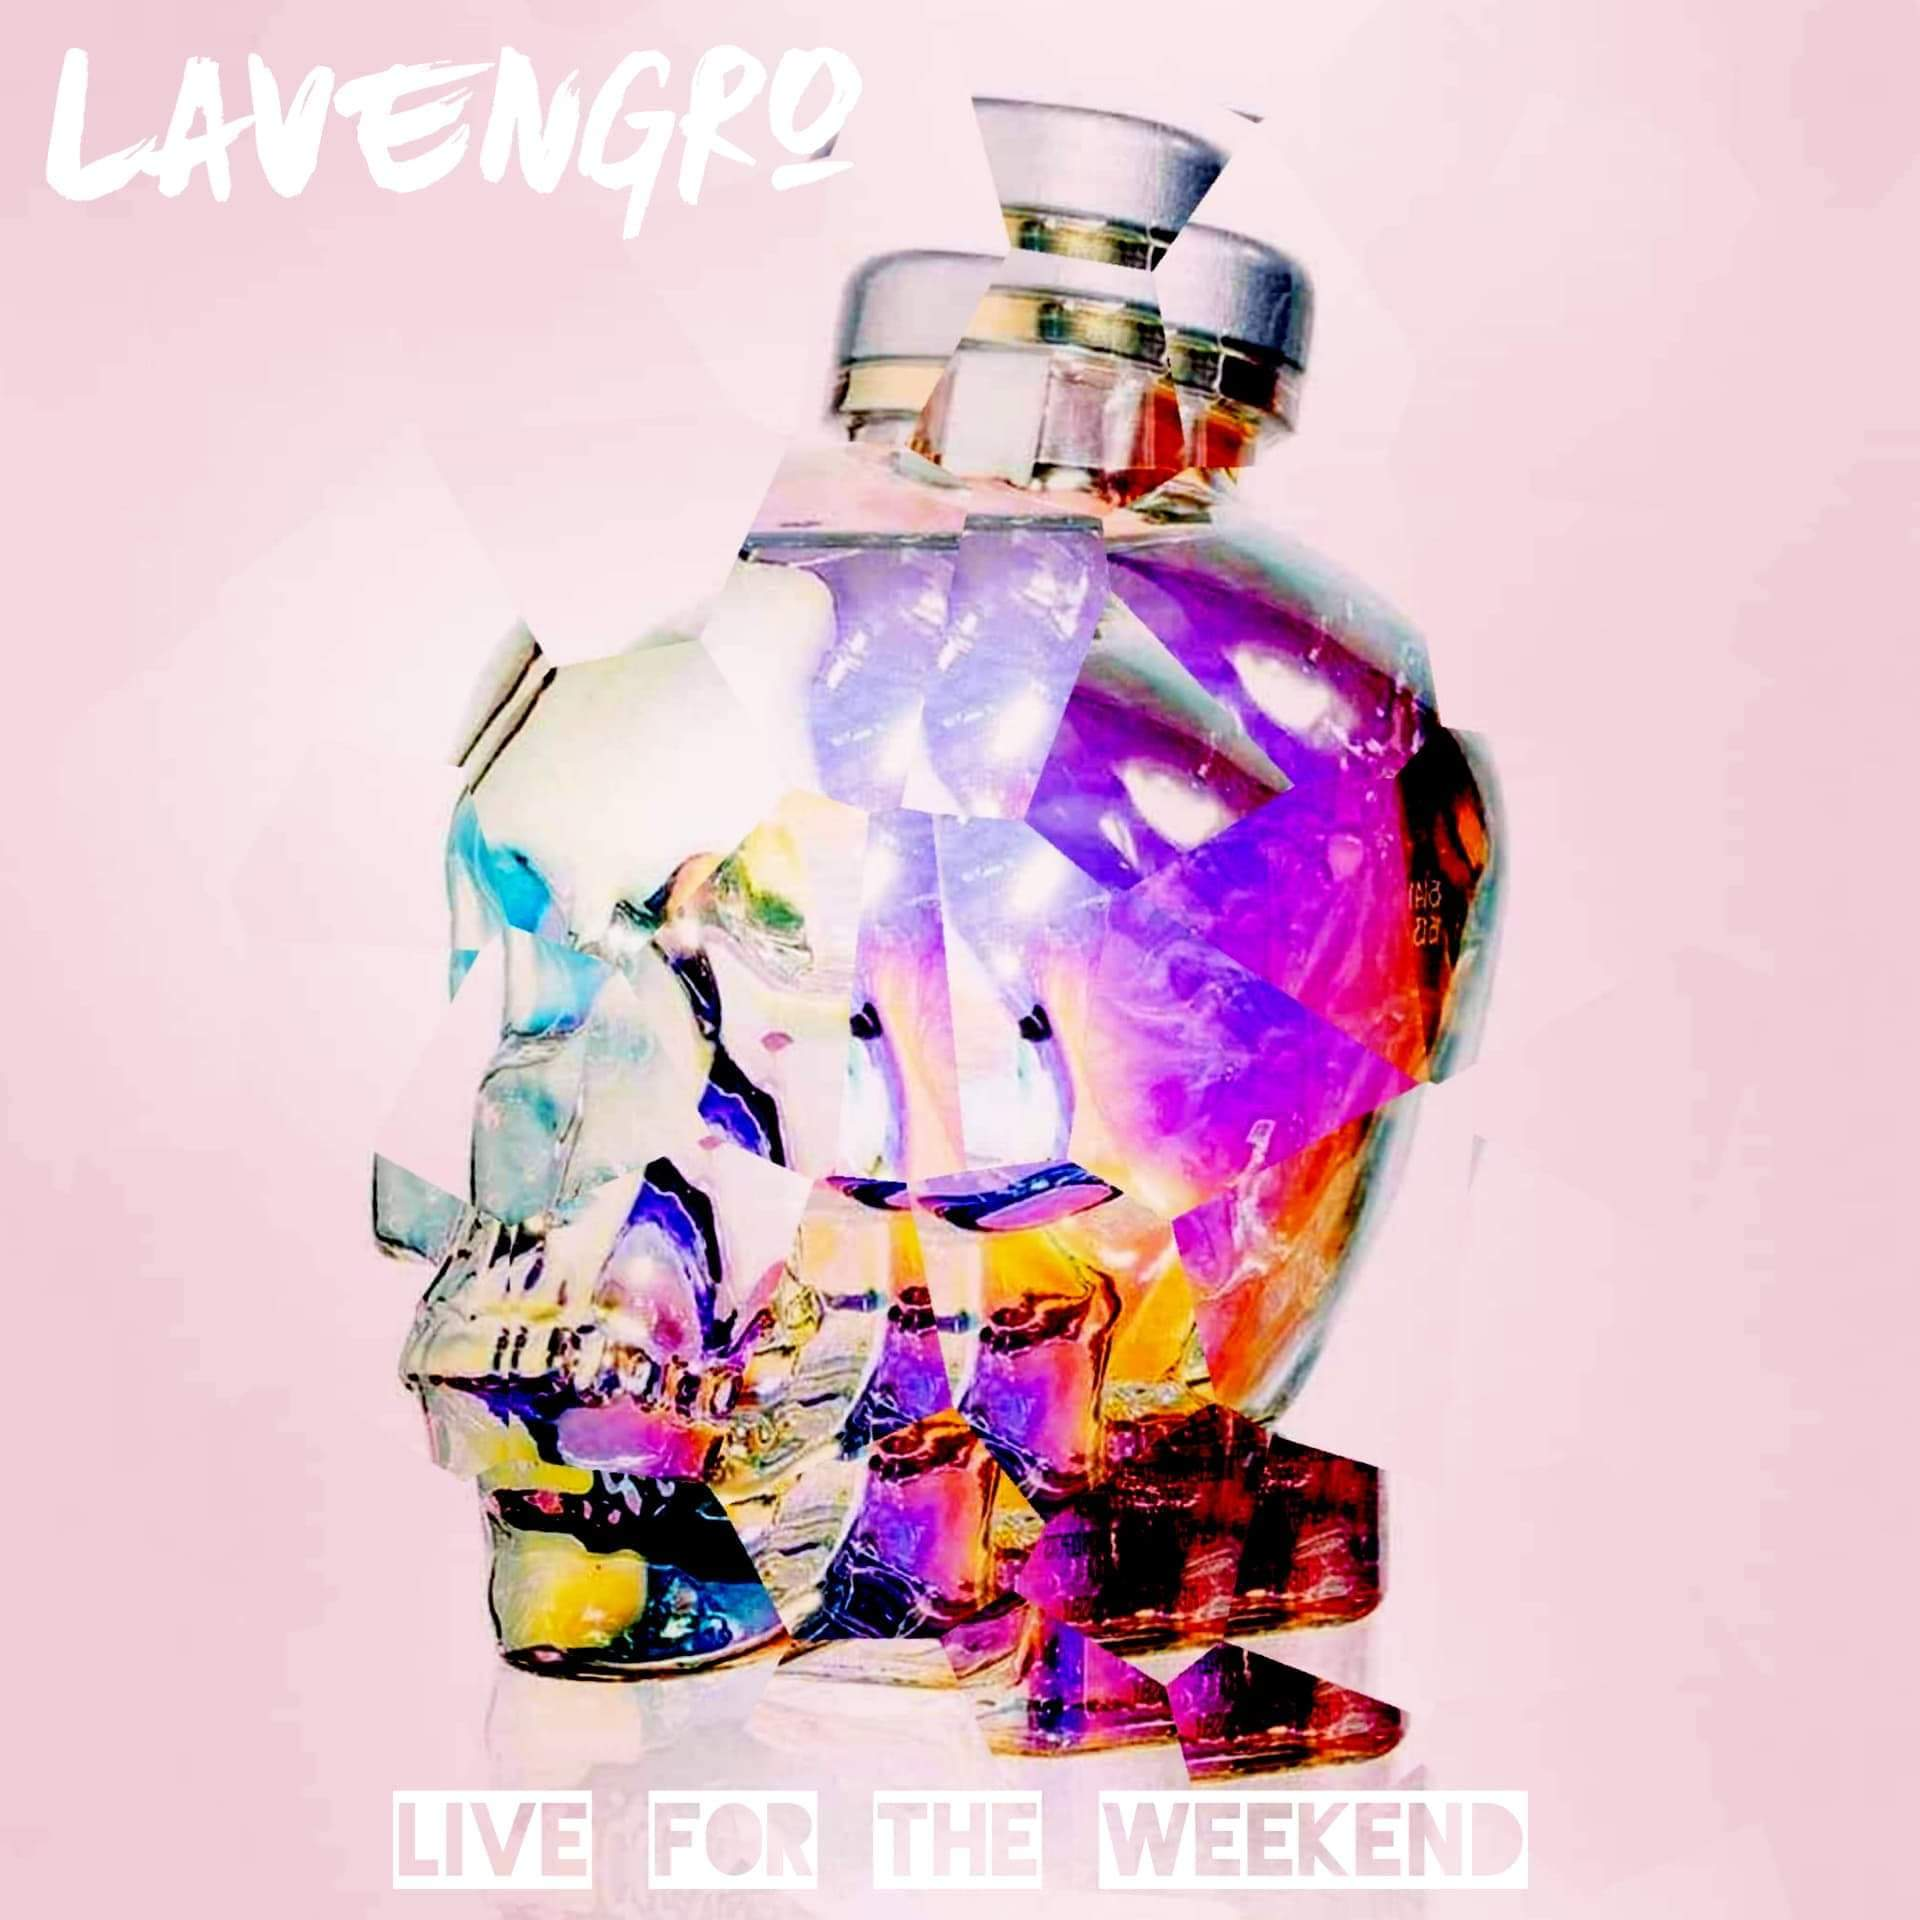 Live For The Weekend Single Artwork.jpeg